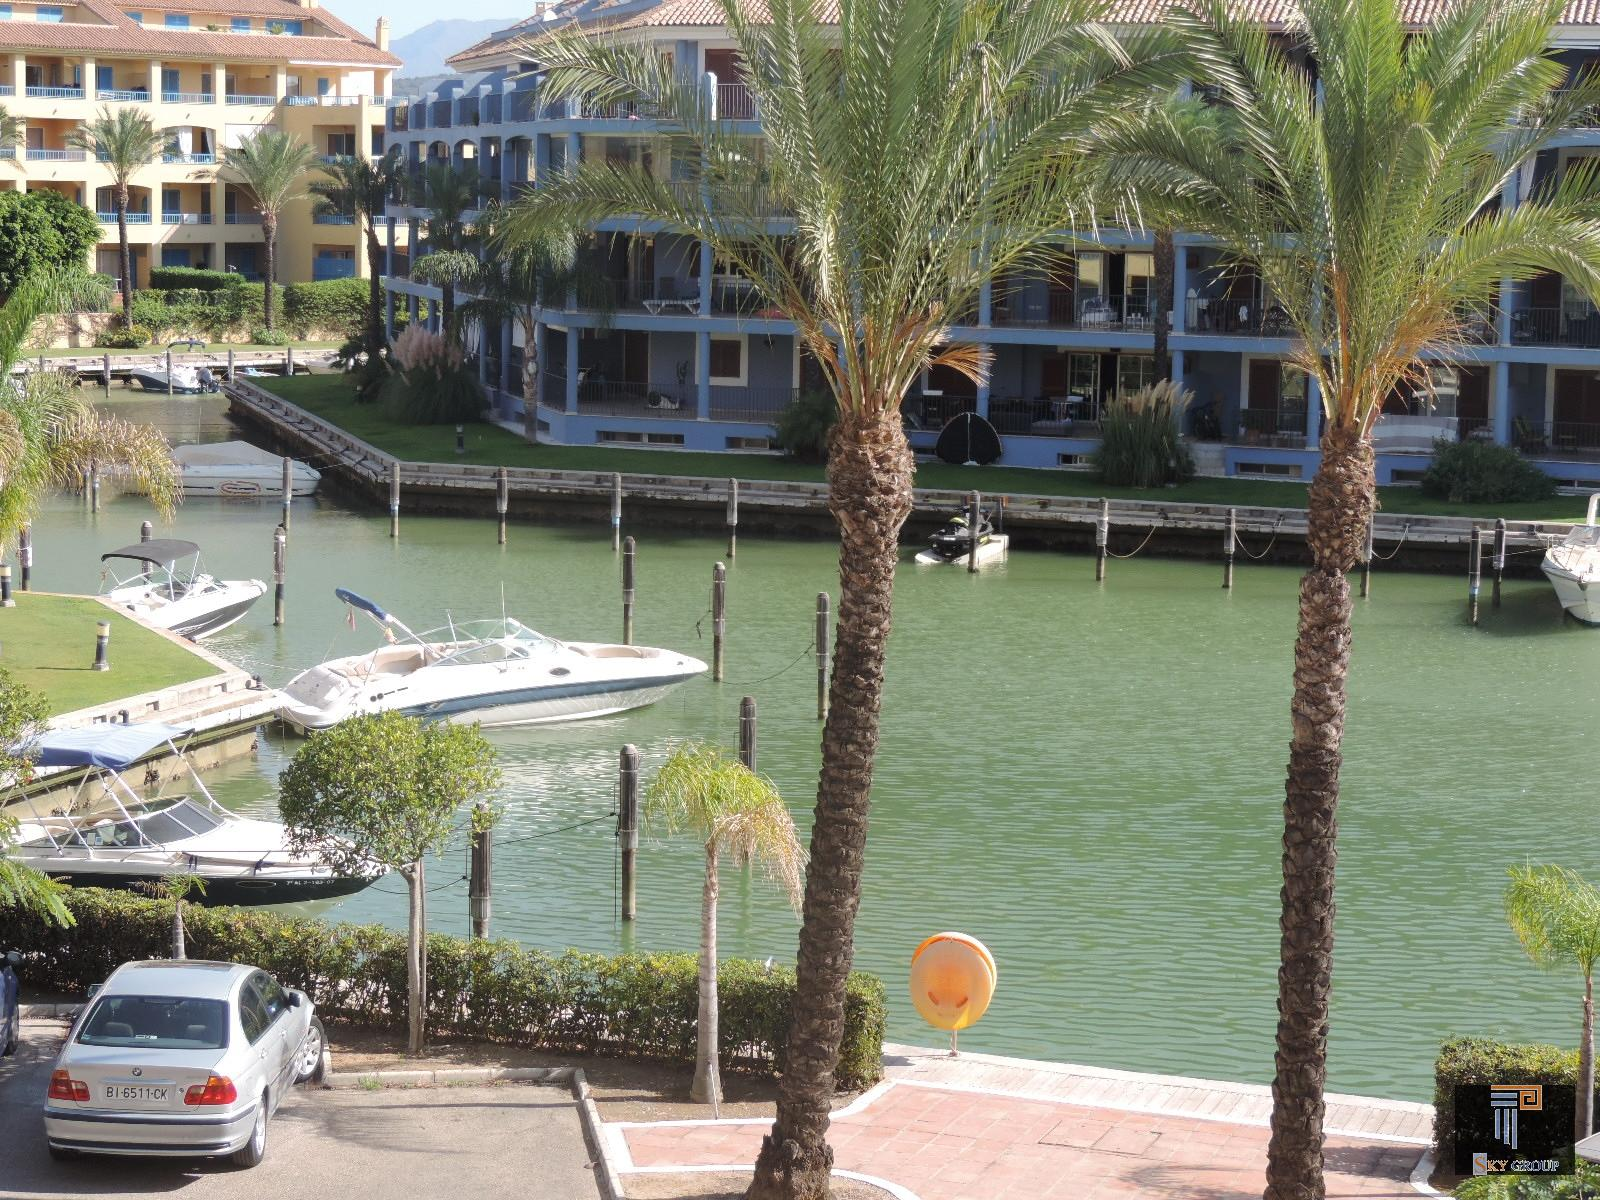 Luxury Apartment for rent in Sotogrande, 1.200 €/month (Ref.: R1602A)